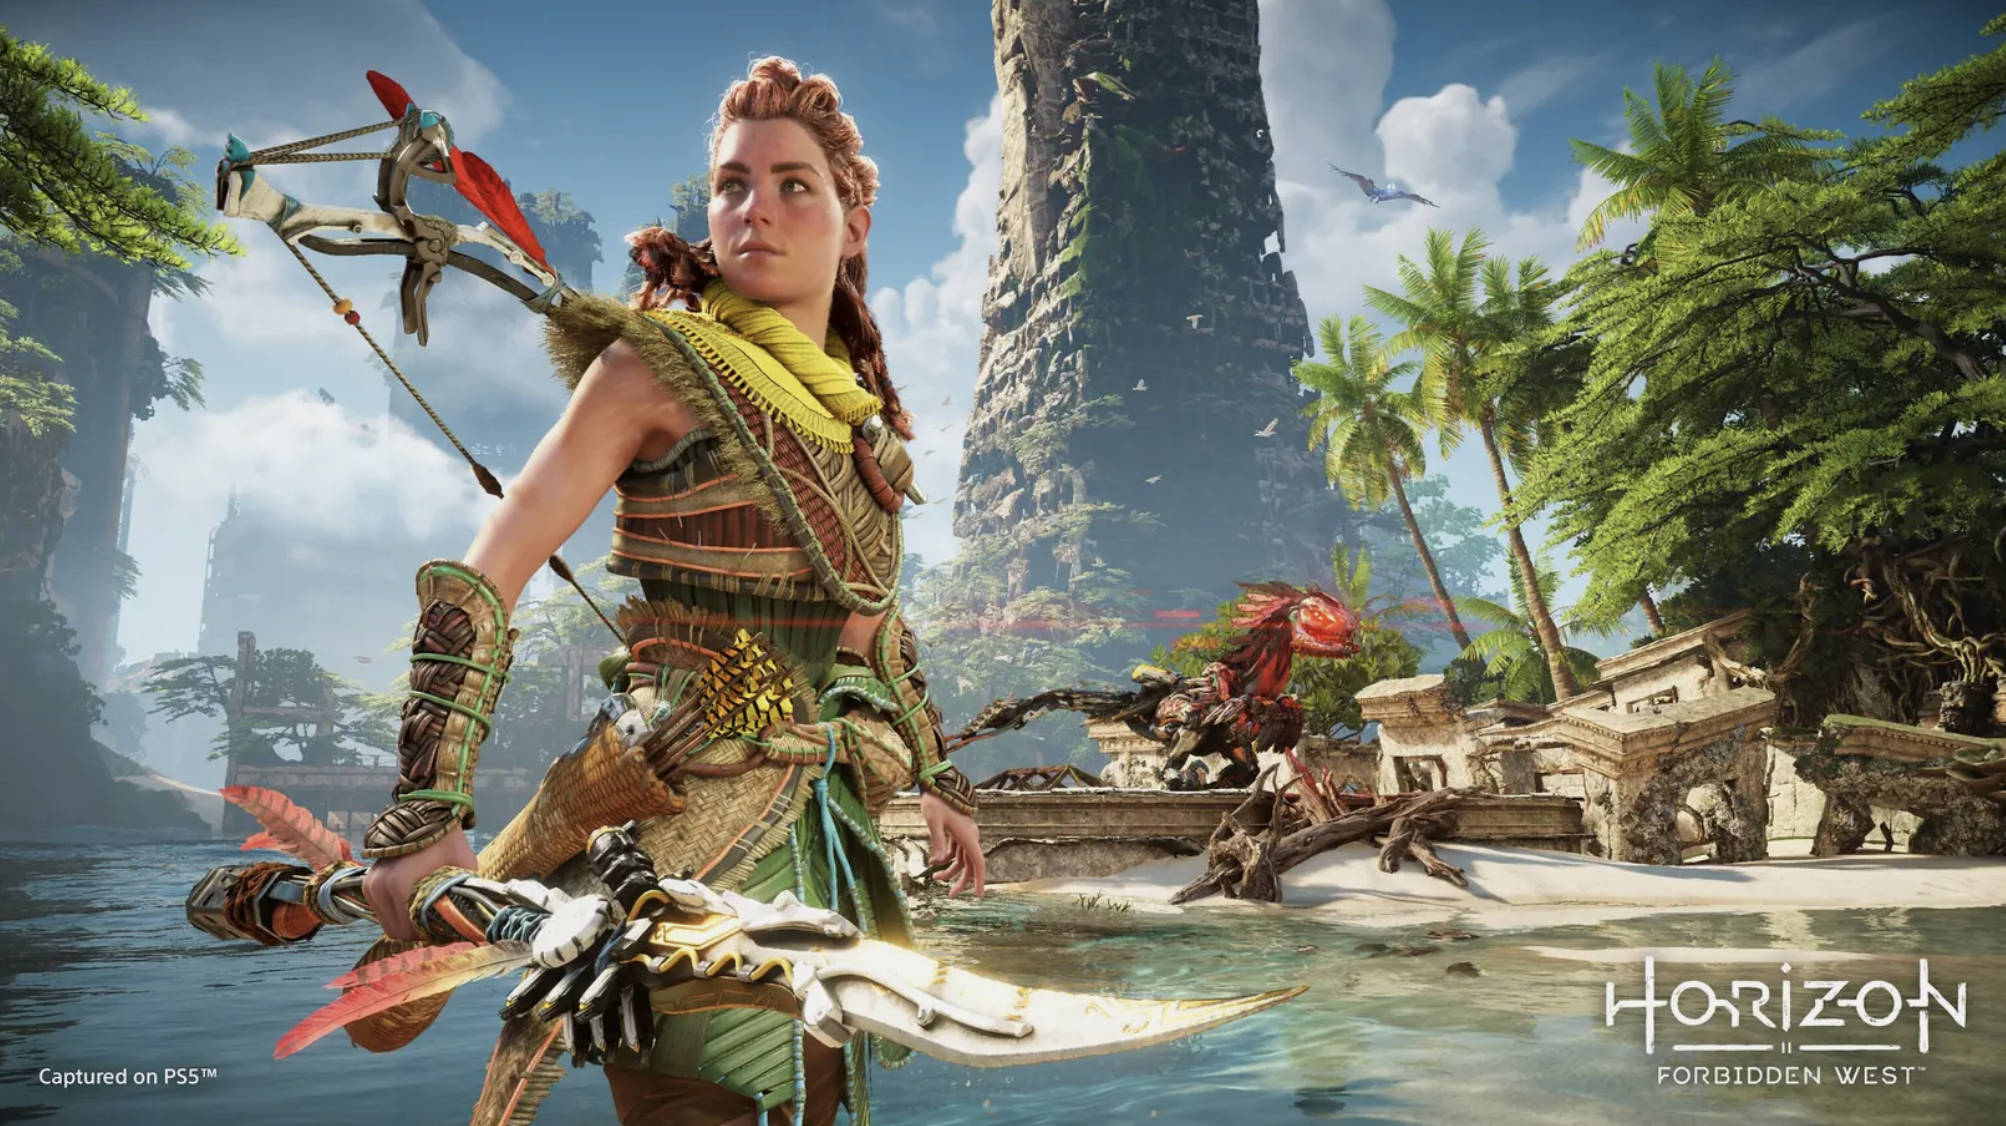 HHW Gaming: Aloy Is Back & Shows Off New Skills In 14-Minutes of 'Horizon Forbidden West' Gameplay Footage